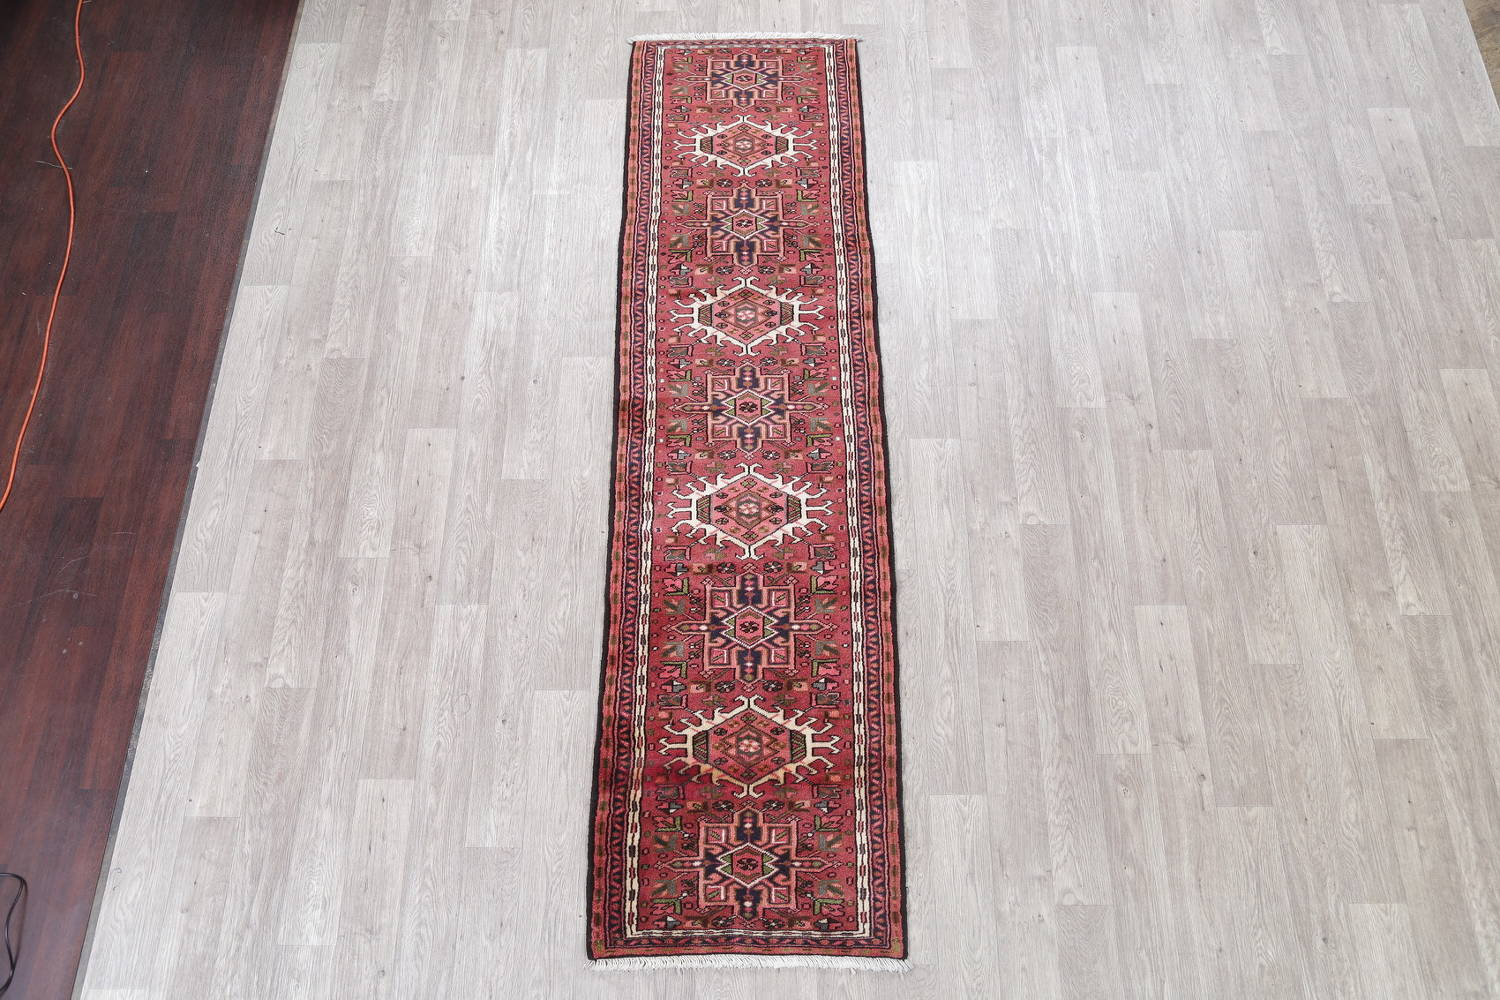 Geometric Red Gharajeh Persian Hand-Knotted Runner Rug Wool 3x10 image 2